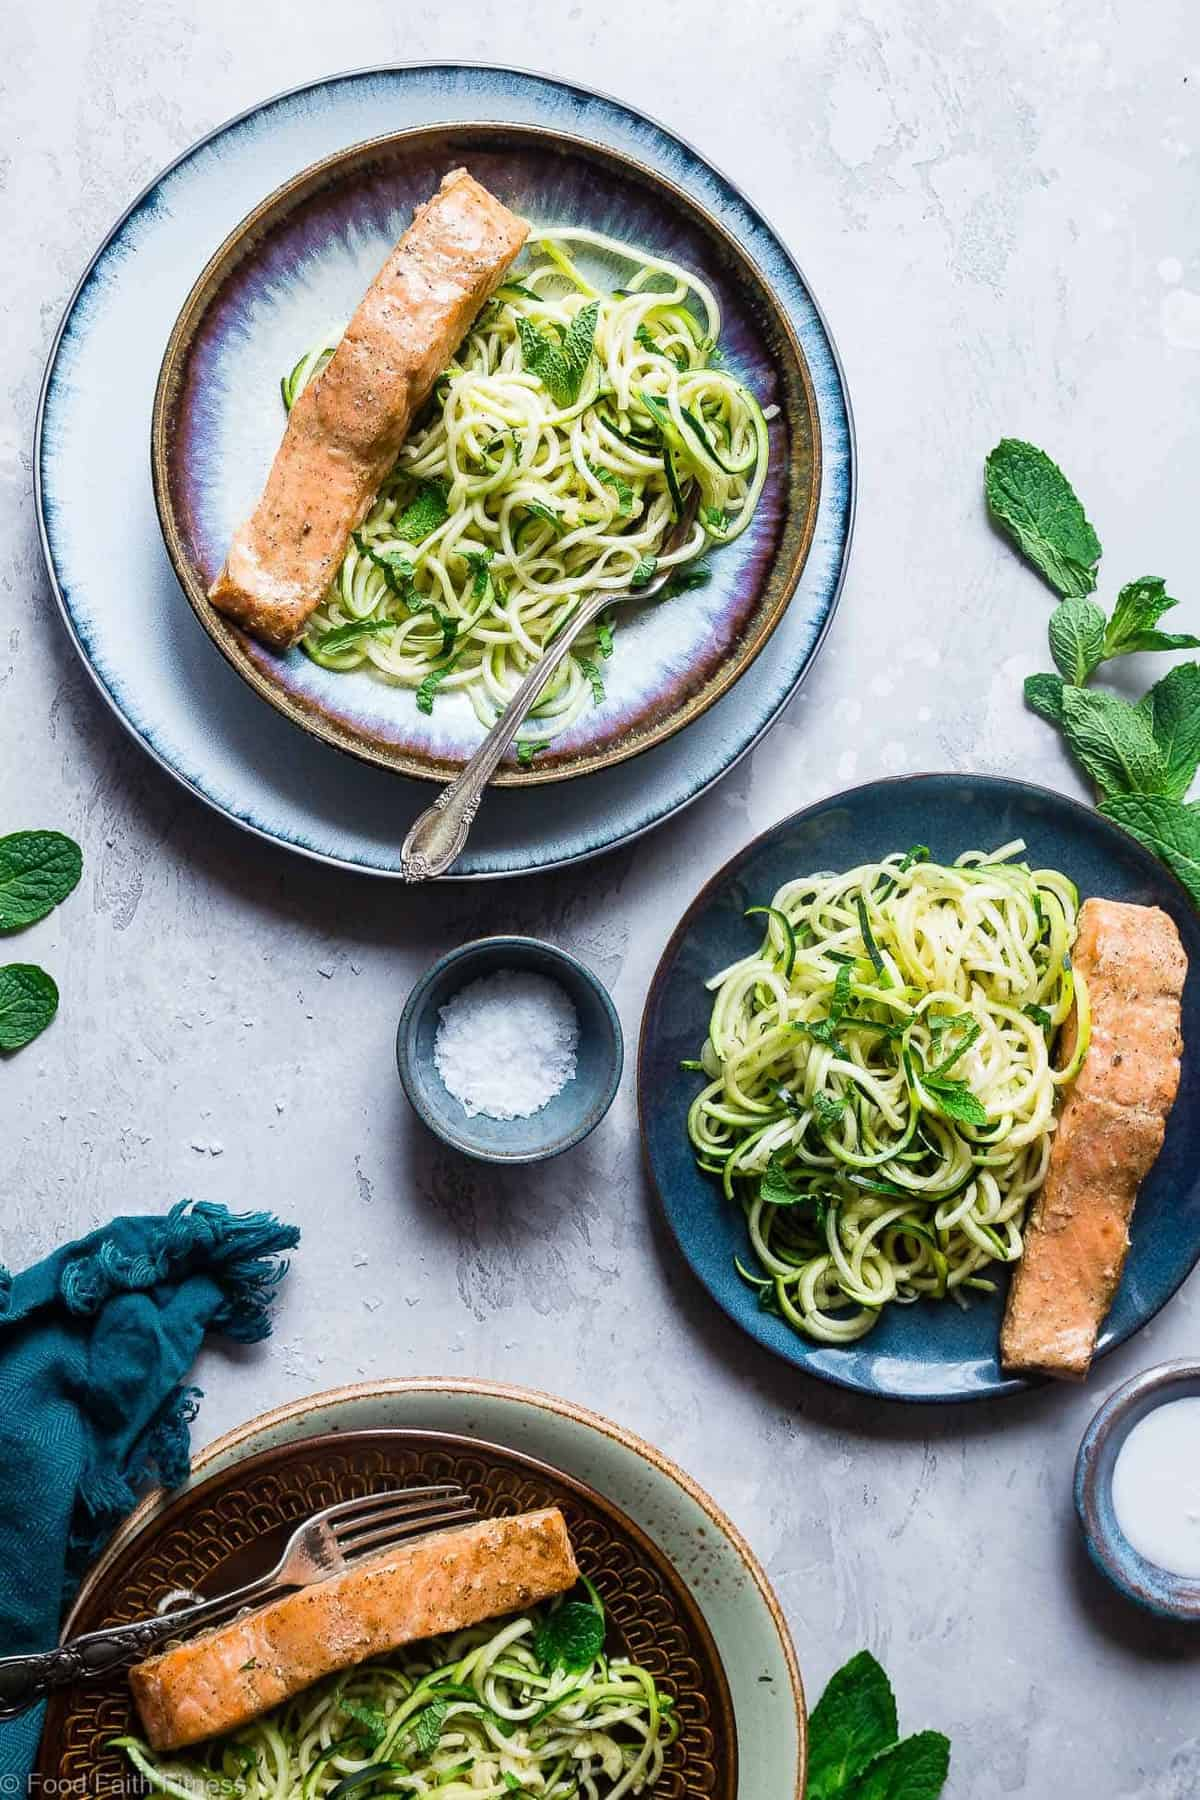 Whole30 Indian Salmon Curry Zucchini Noodles - ASUPER easy, 5-ingredient, healthy meal that is paleo, gluten free, low carb and whole30 compliant! Perfect for busy weeknights! | #Foodfaithfitness | #Paleo #Lowcarb #Whole30 #Healthy #Keto